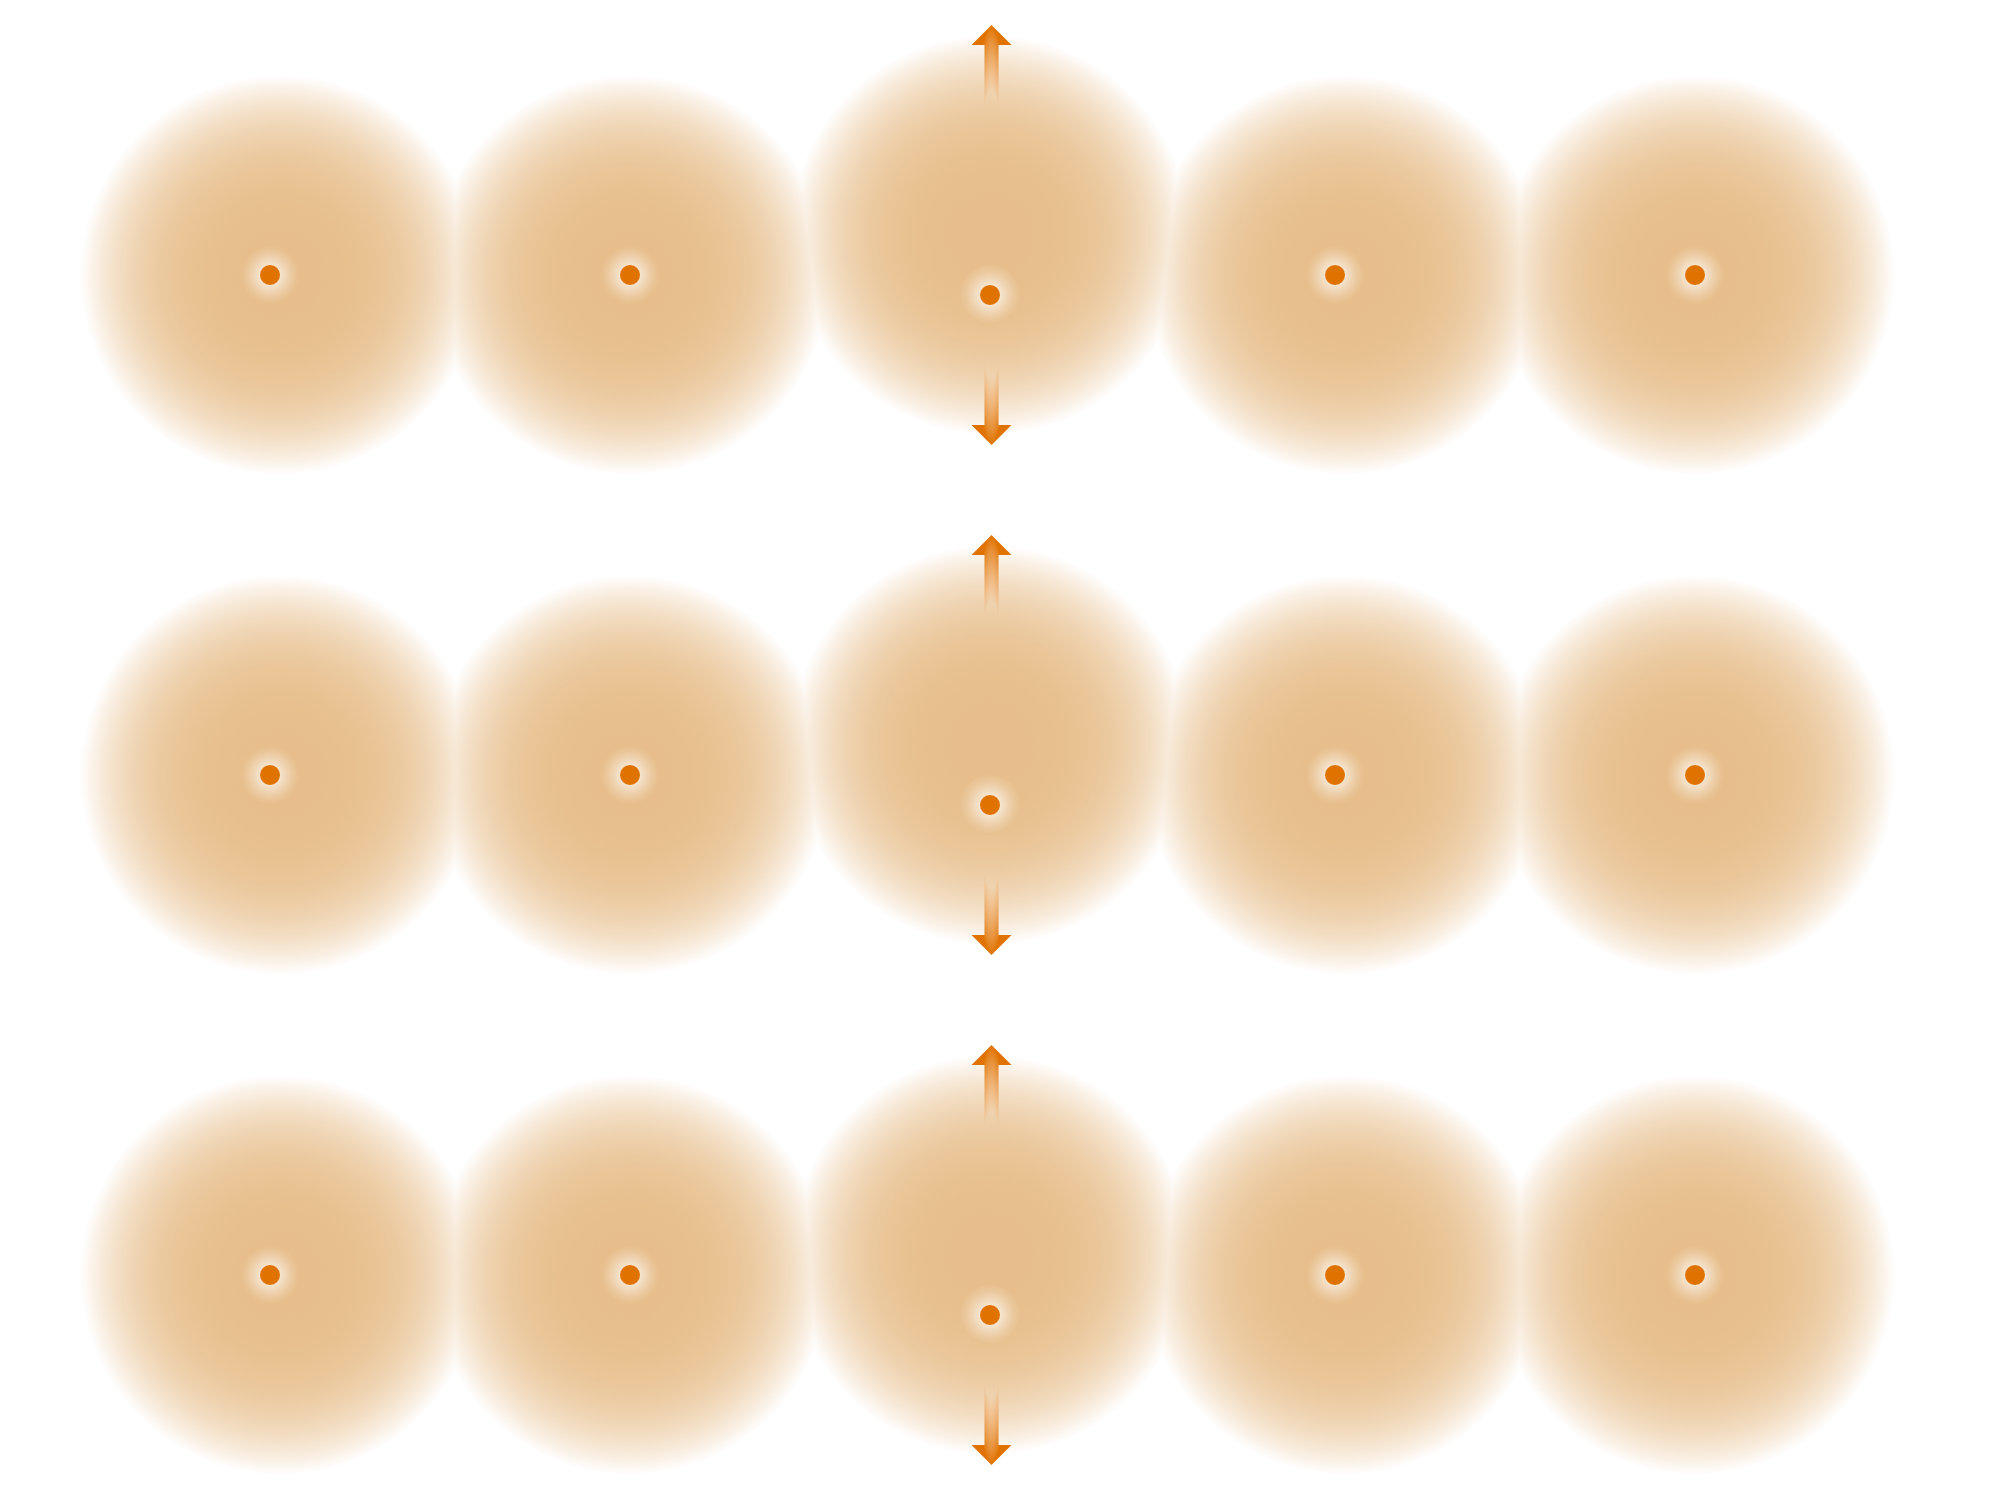 Figure 2. A cartoon of atoms in the polarized filter of sunglasses. On average, they are lined up in a chain in a way as to allow the electron cloud to mainly move up and down, not left and right. The material is said to be vertically polarized.